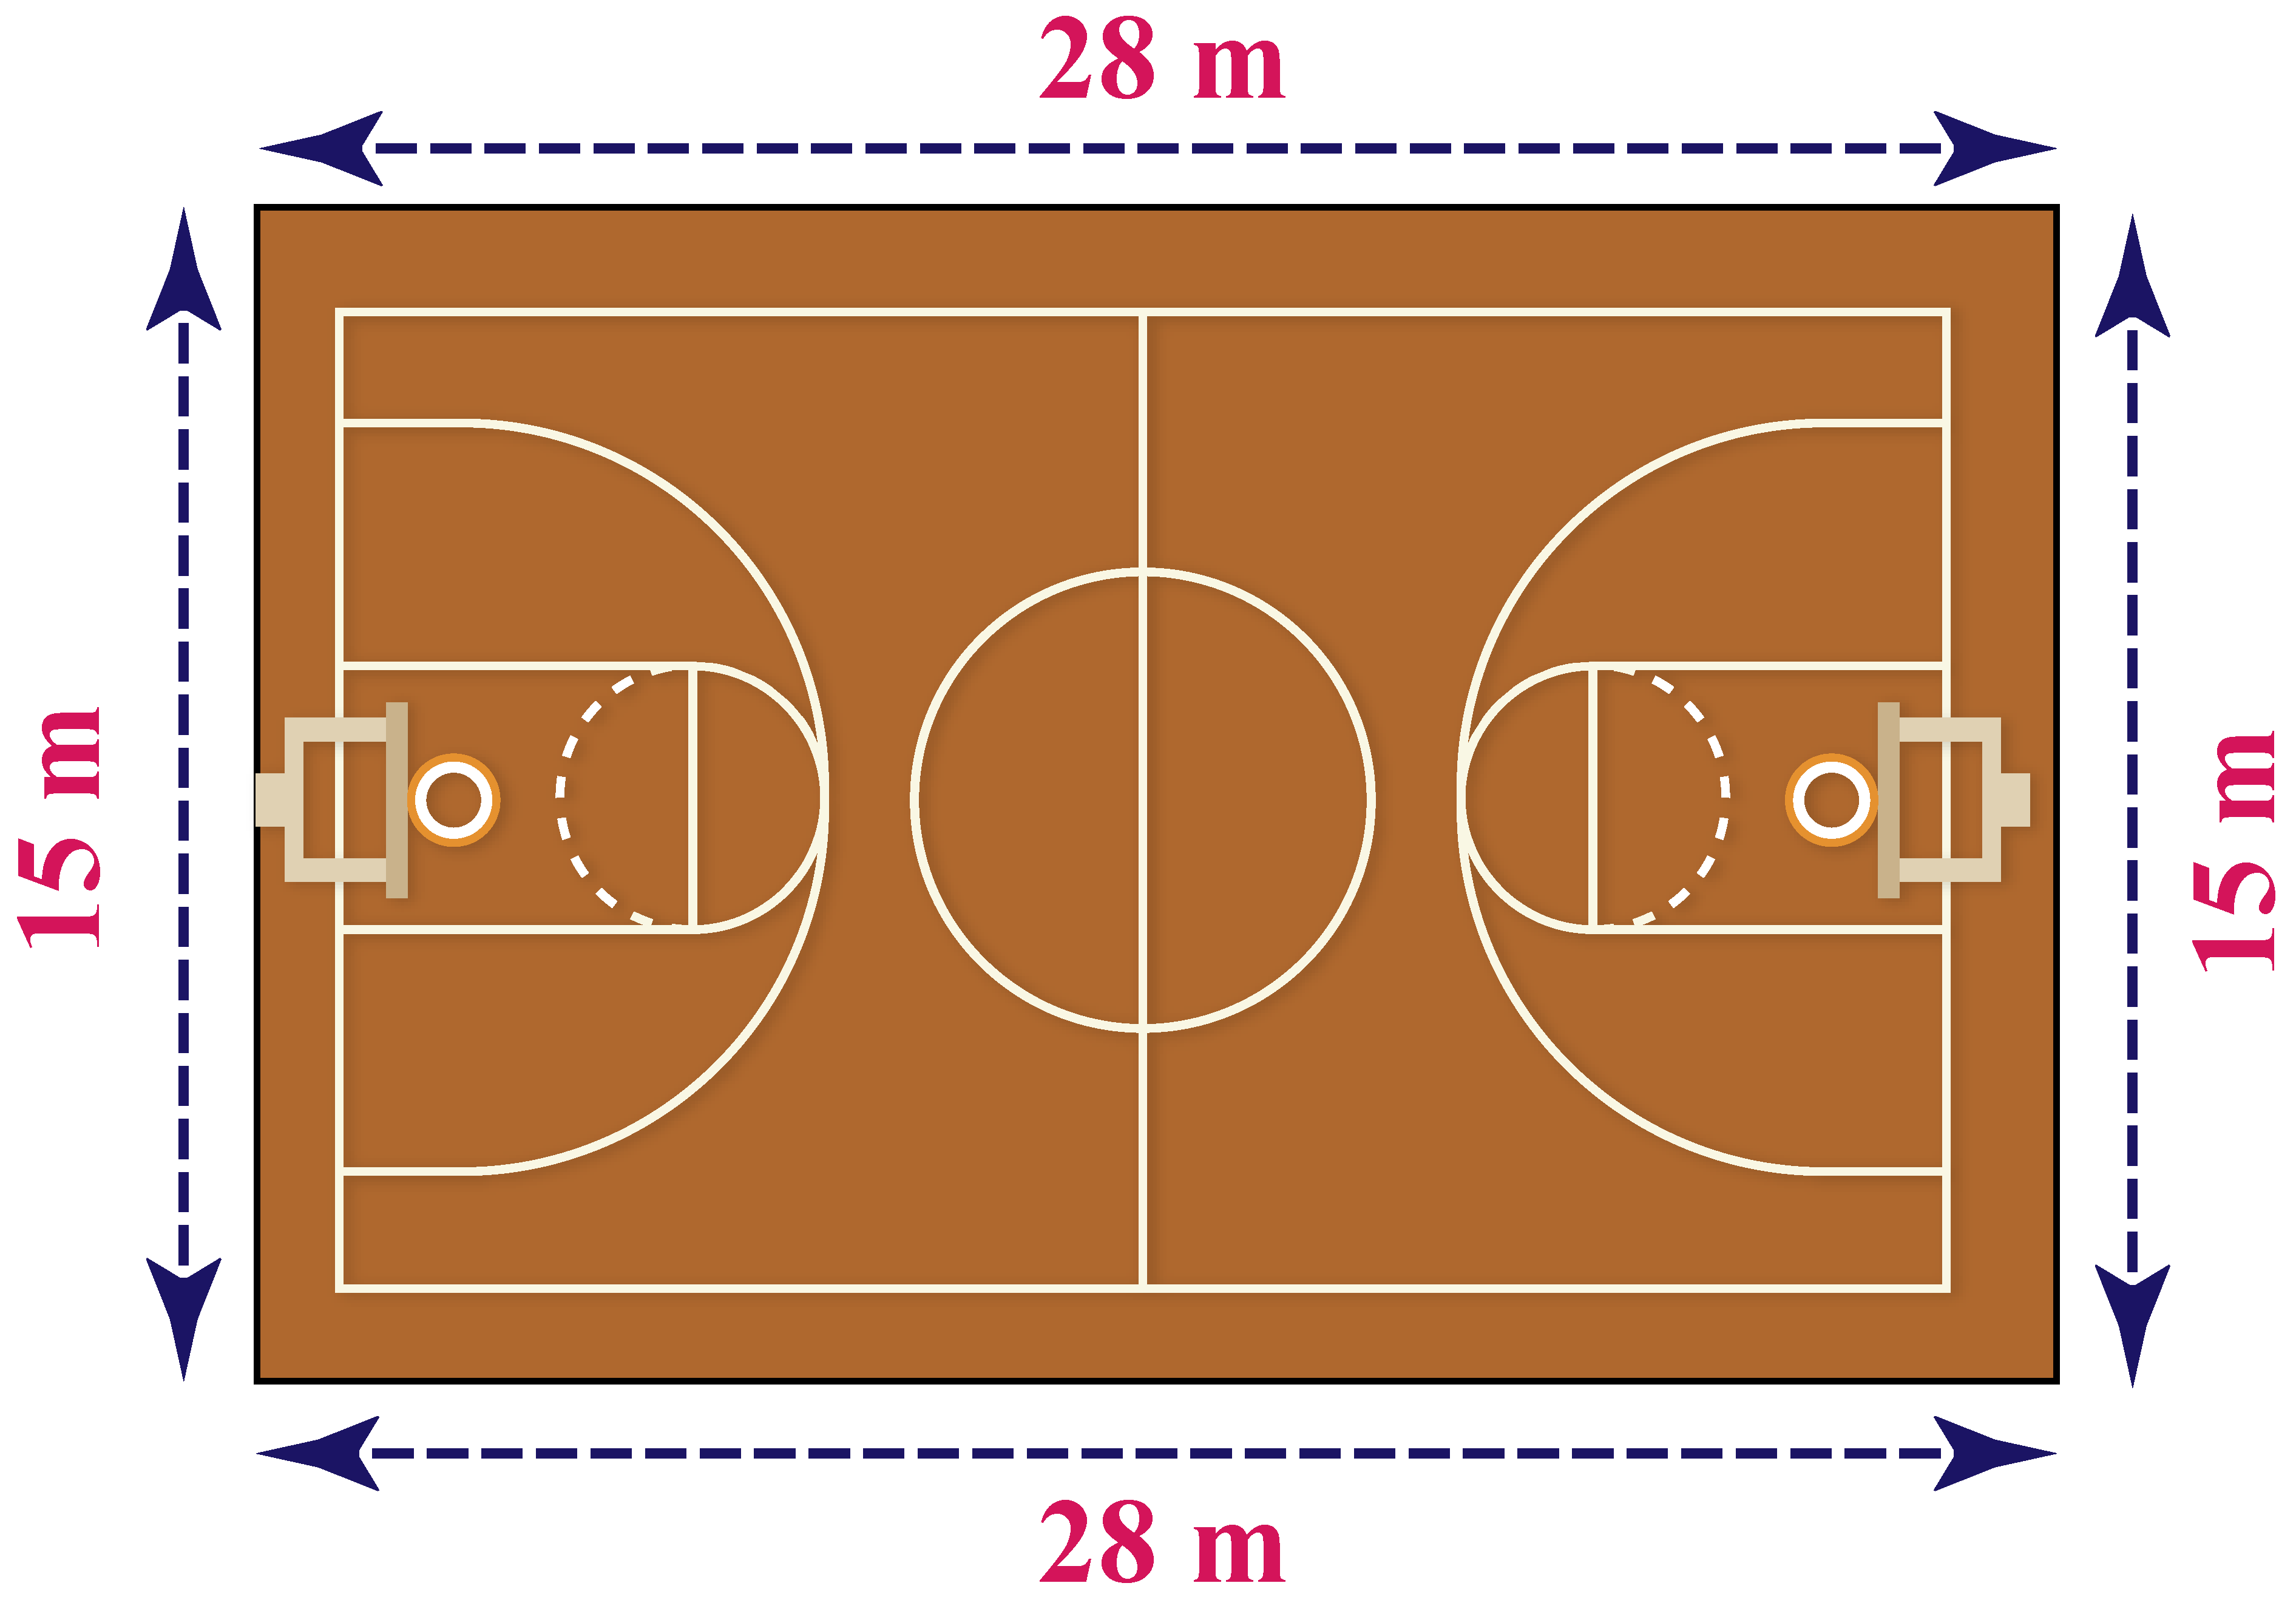 Basketball court with dimensions marked